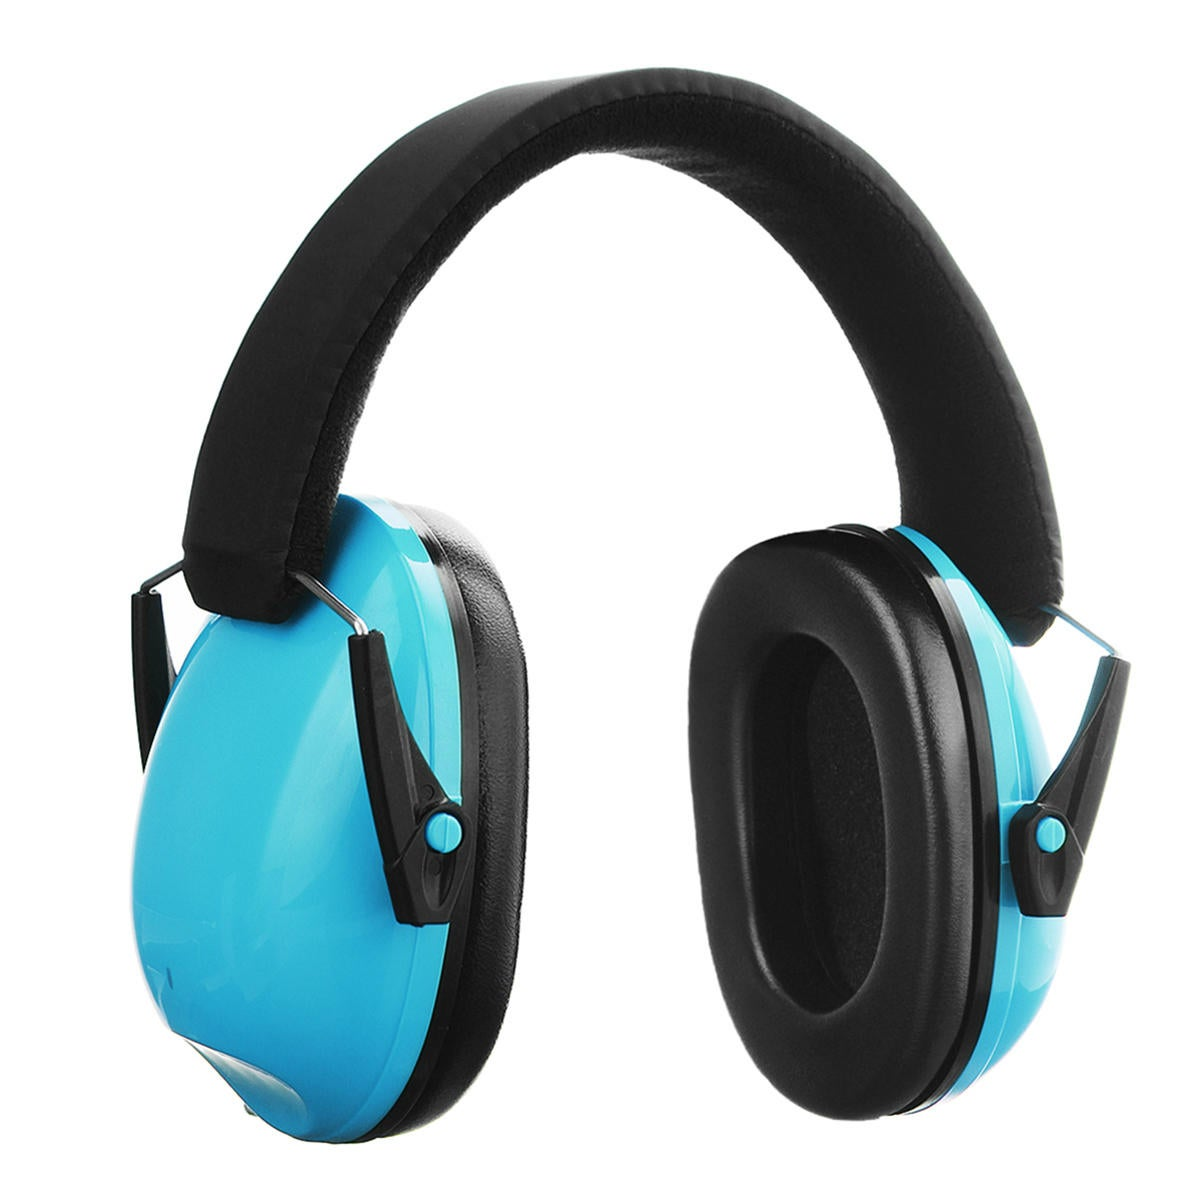 Kids Ear Muffs Hearing Protection Noise Reduction Children Ear Defenders Safety Earphone BLUE COLOR